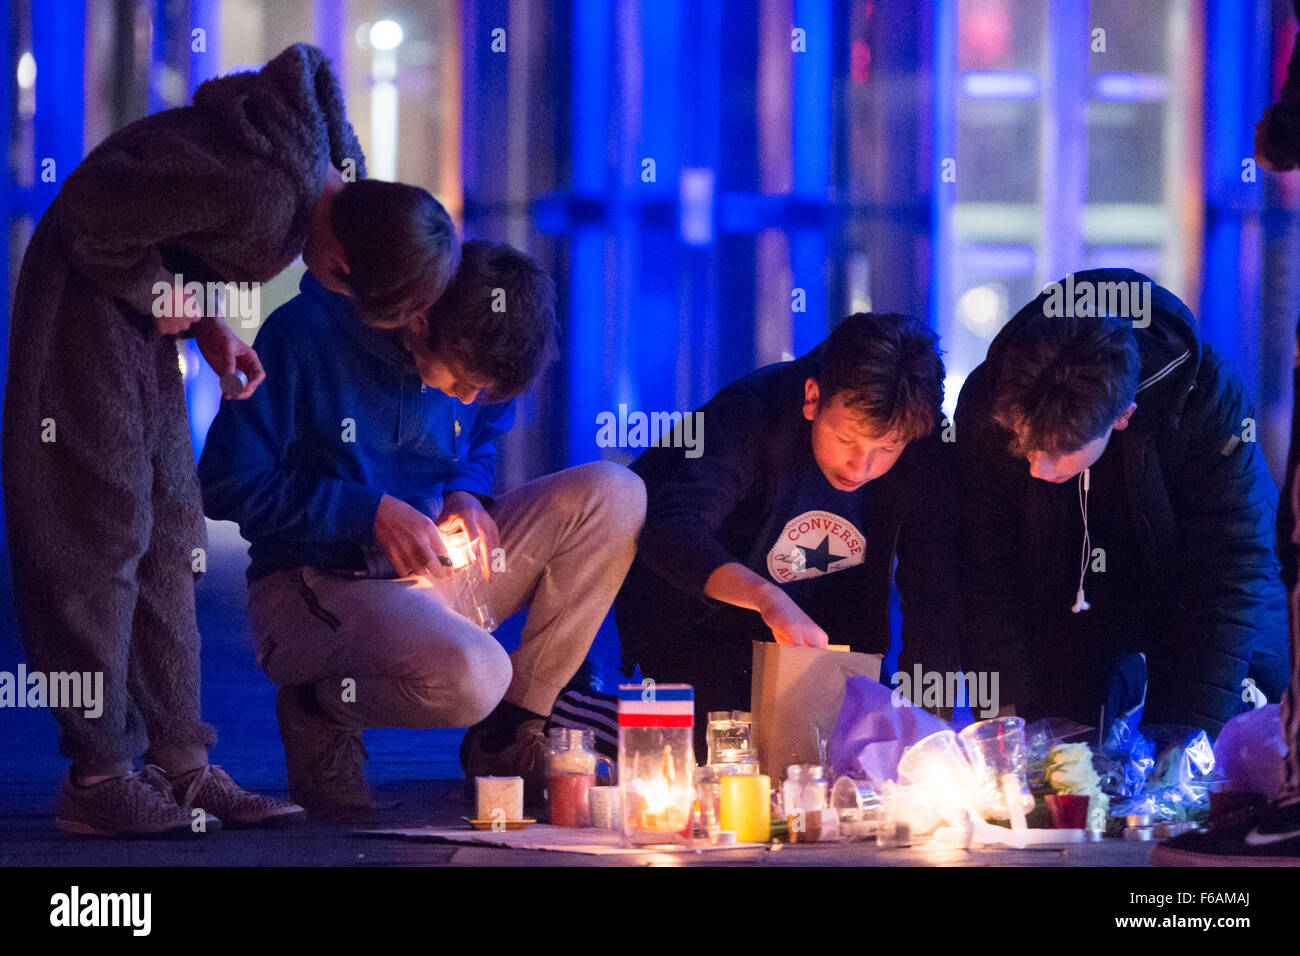 A vigil is held to Paris terrorist attack victims at the Senedd, Cardiff Bay, Wales. - Stock Image